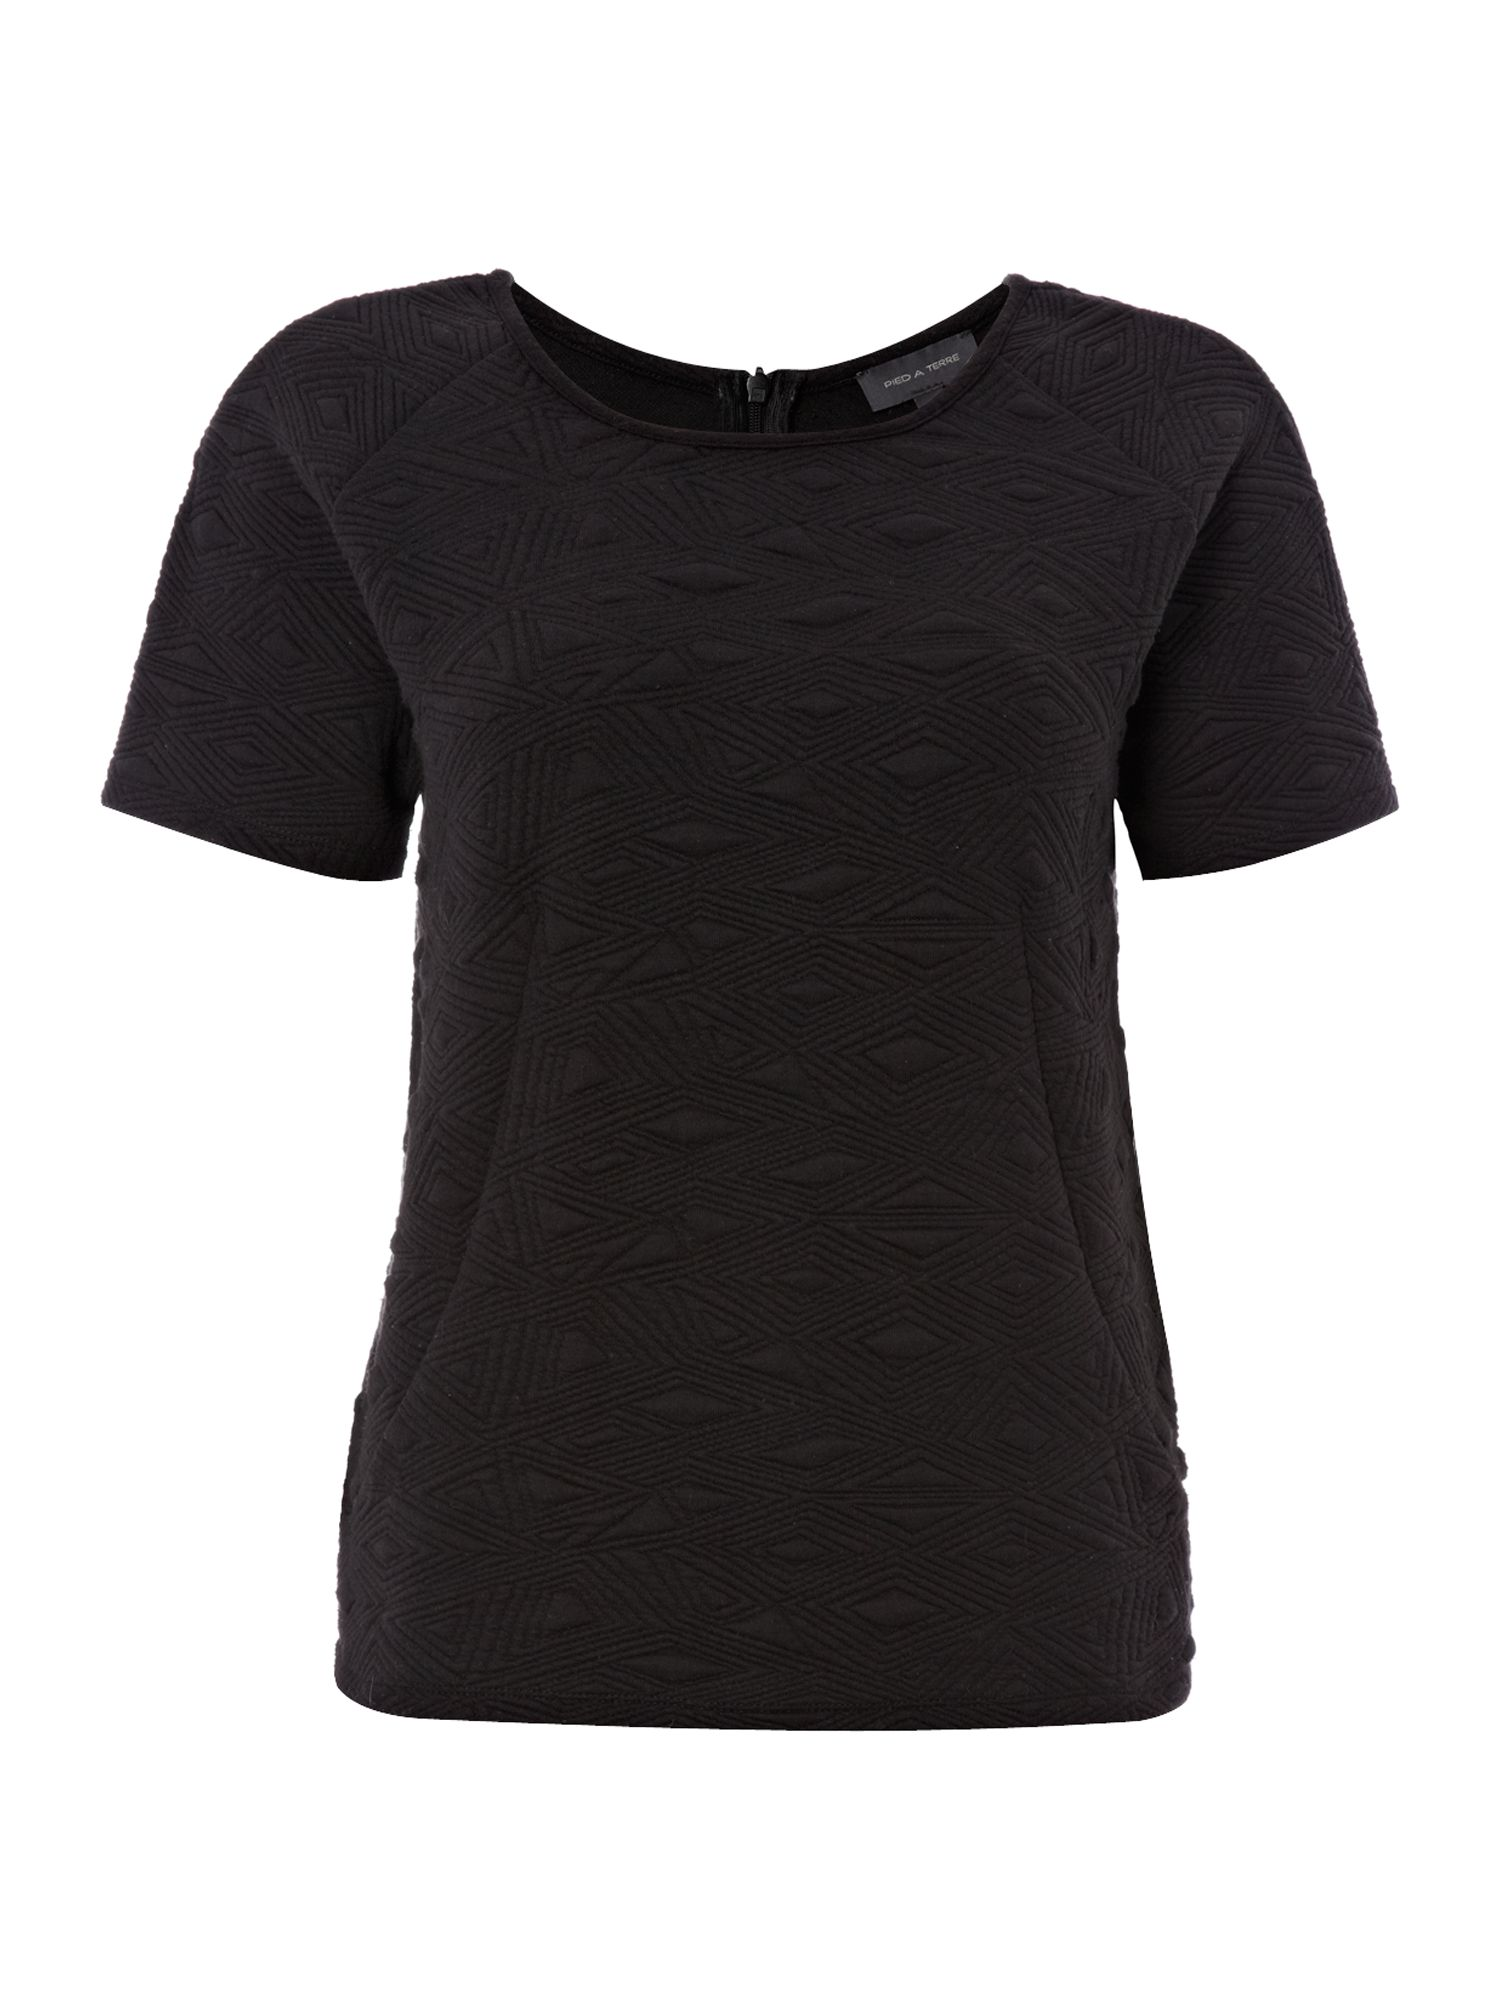 Textured jersey couture tee